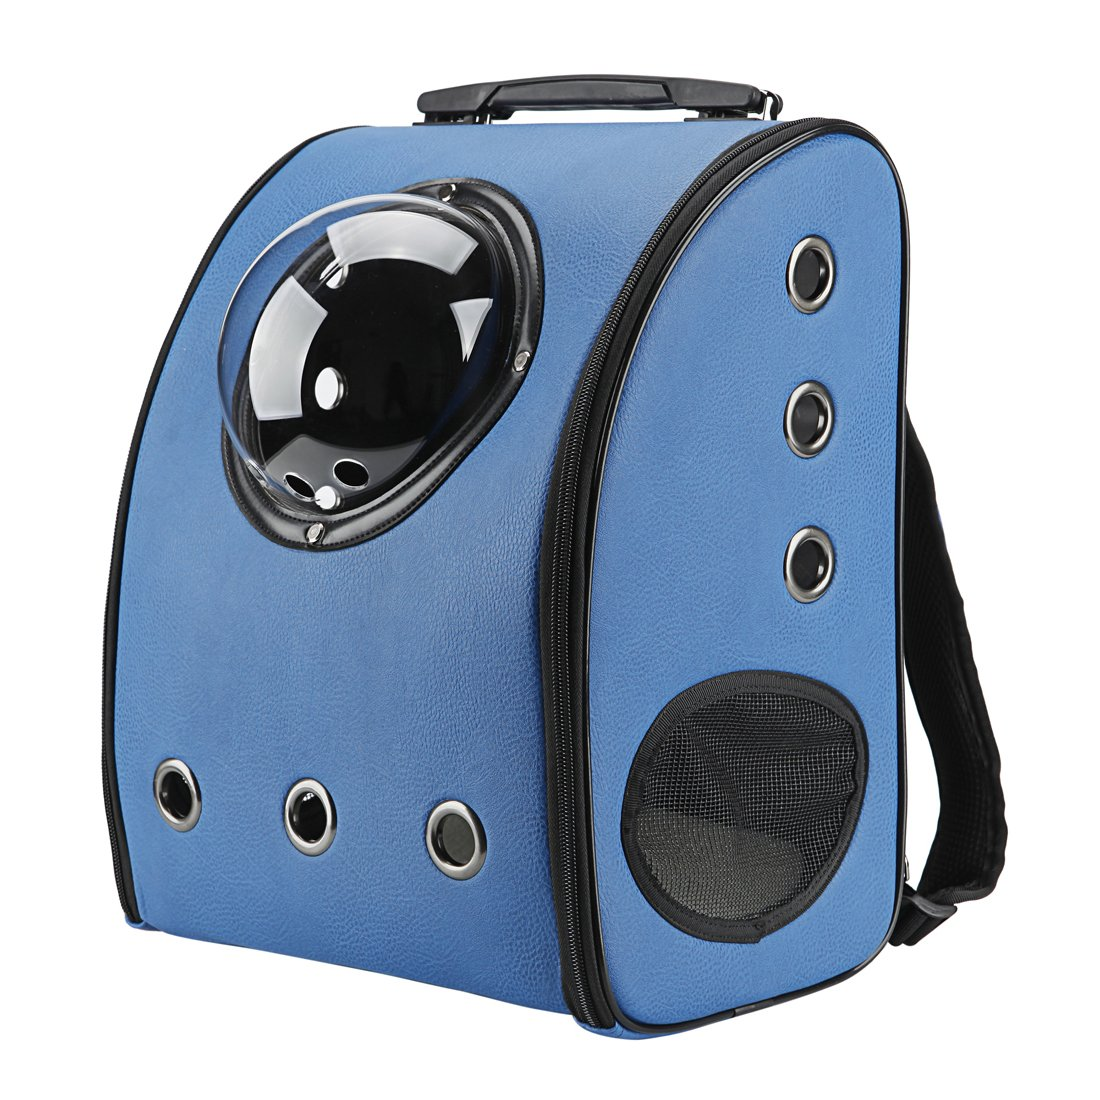 Texsens Traveler Bubble Backpack Pet Carriers for Cats and Dogs